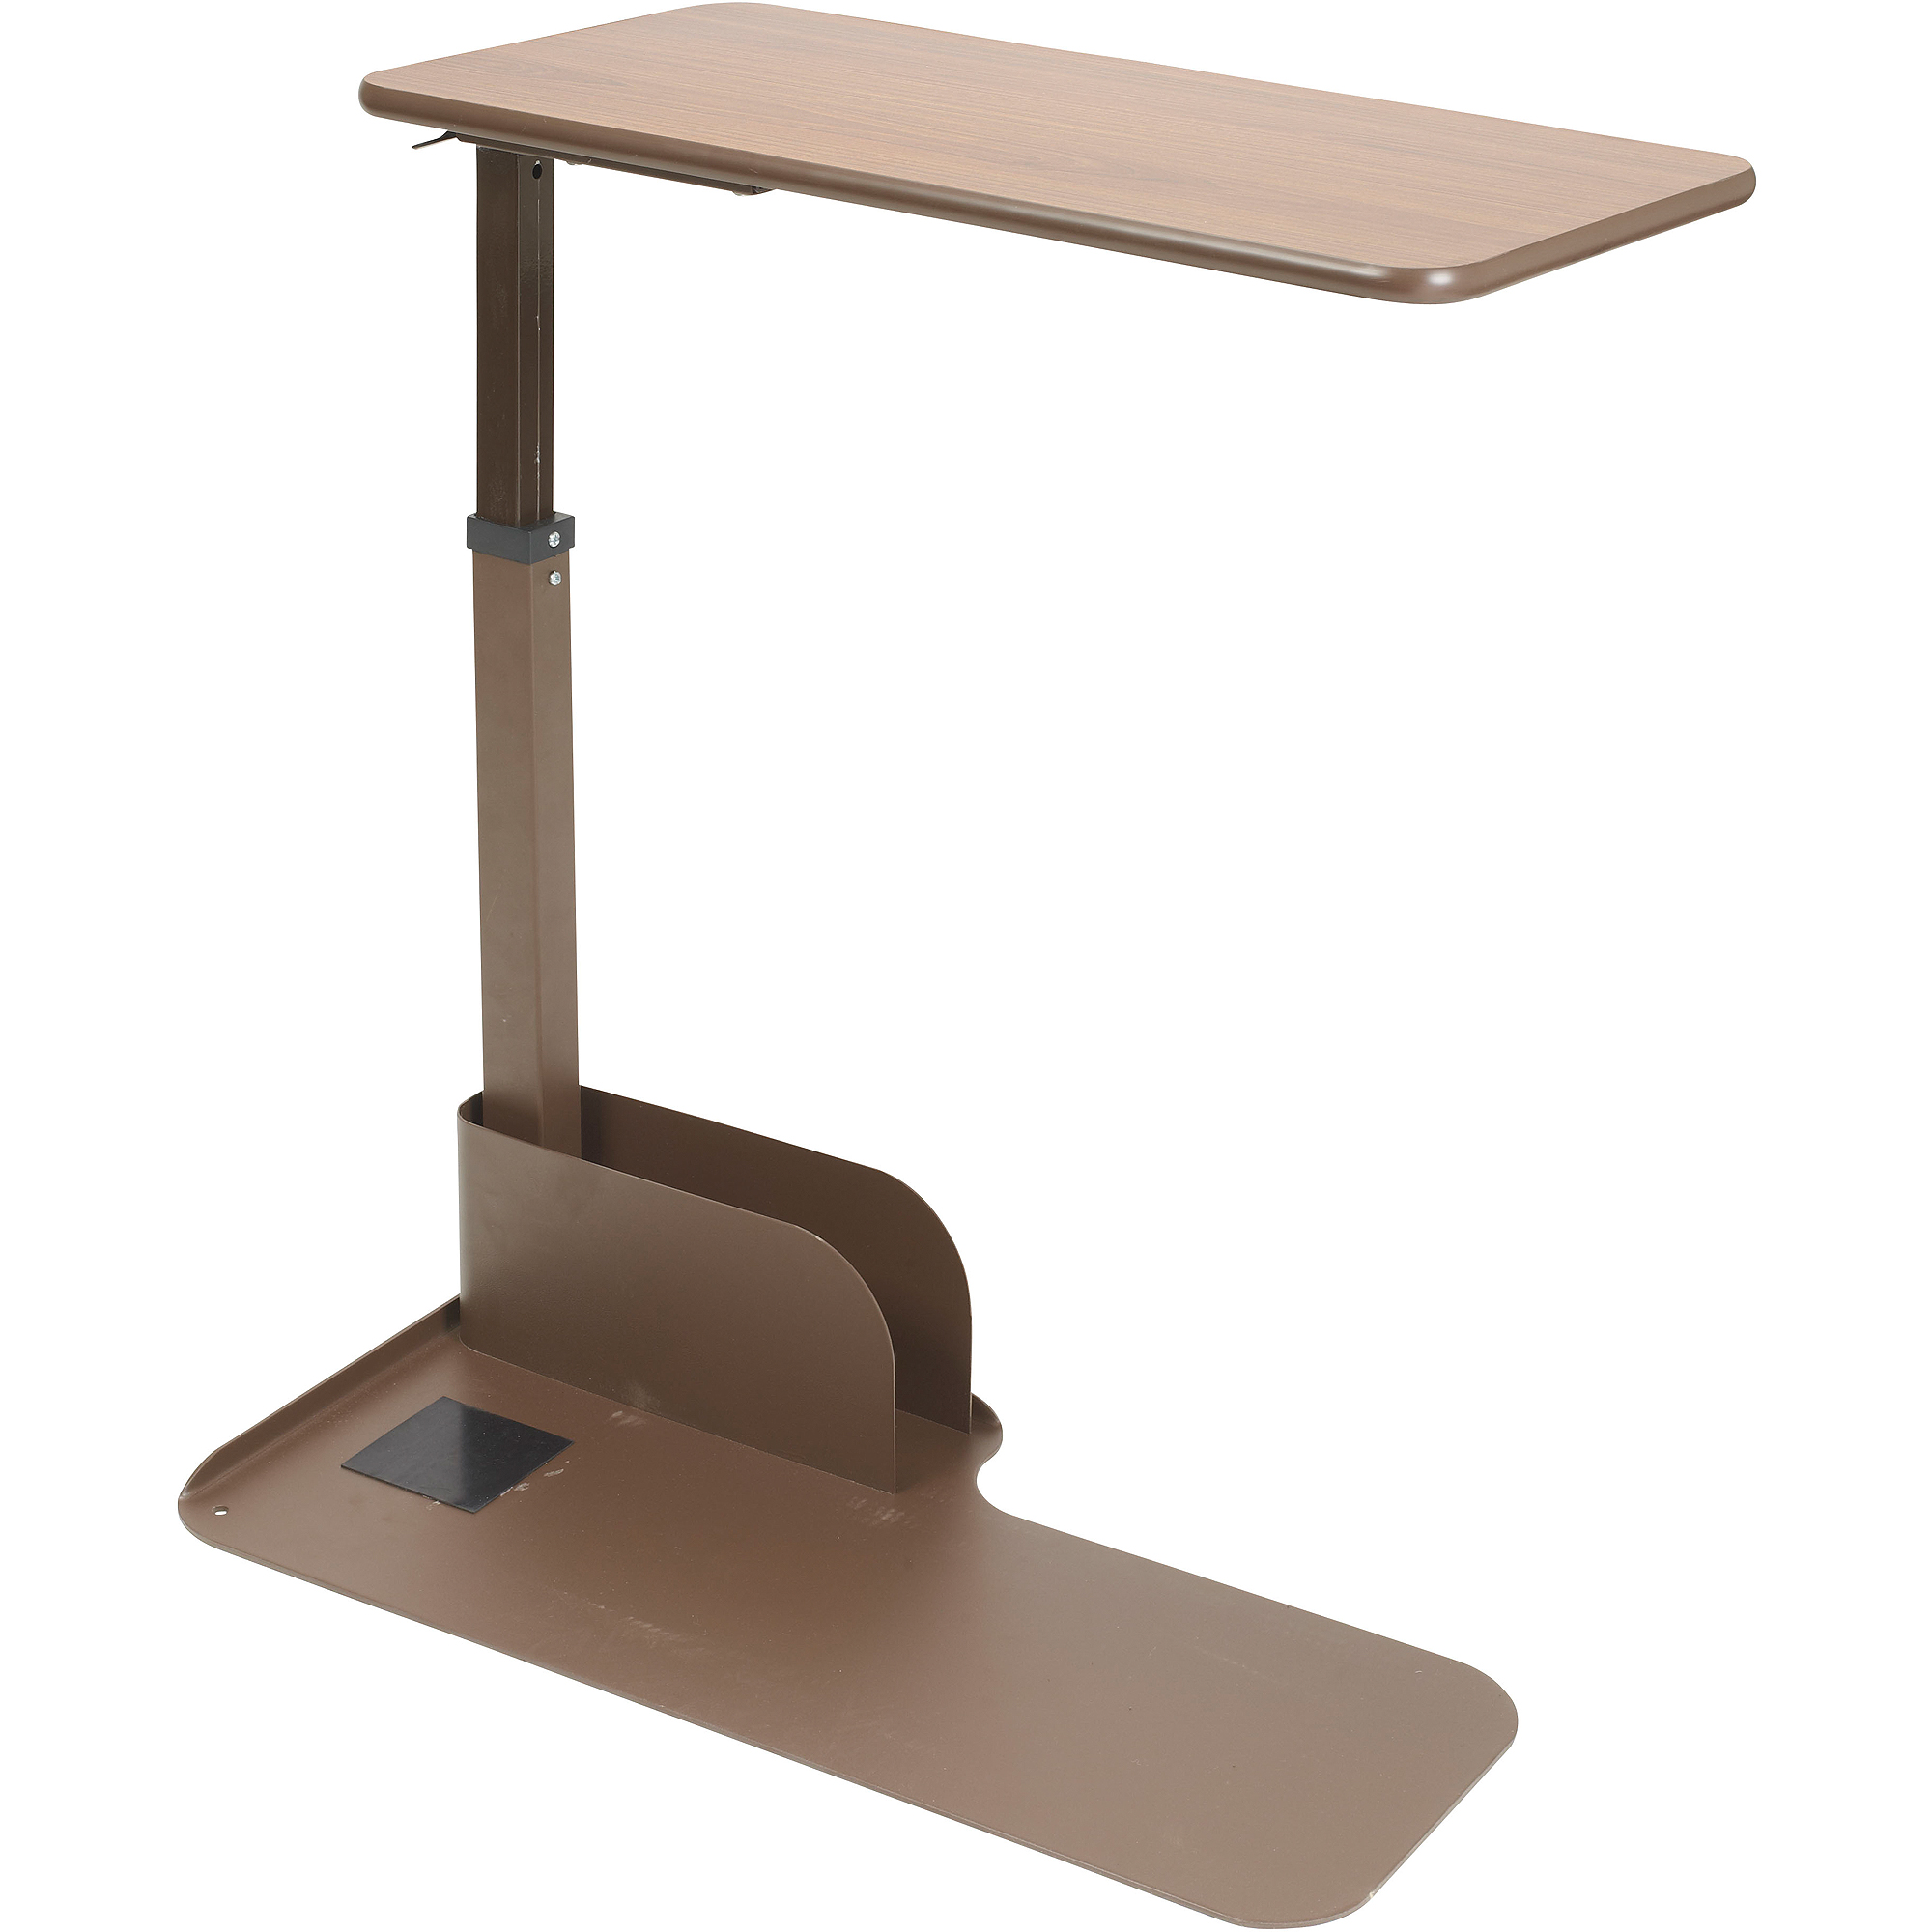 Lift chair table - Drive Medical Seat Lift Chair Overbed Table Right Side Table Walmart Com